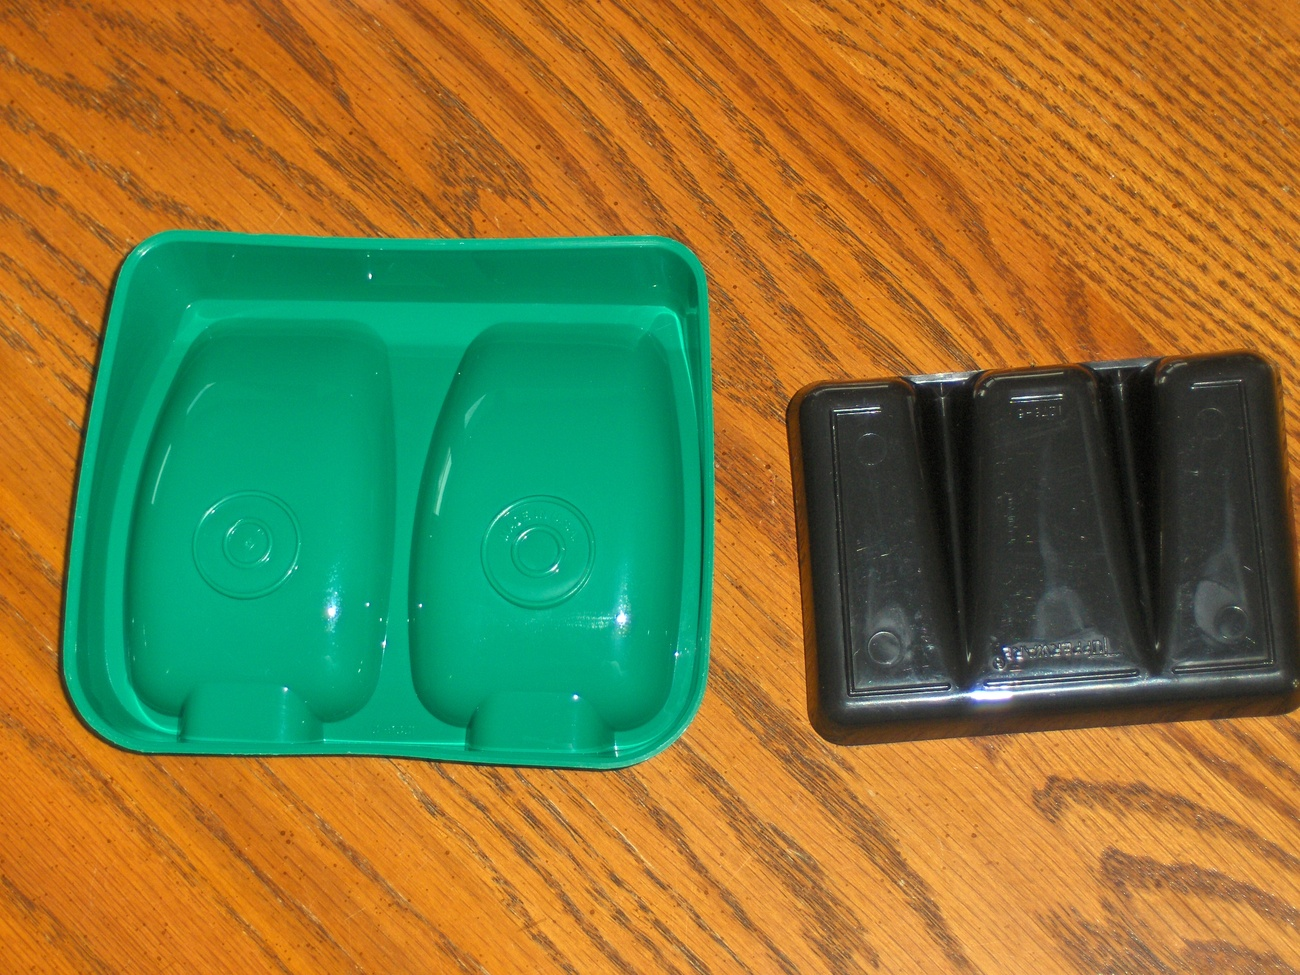 Tupperware Spoon Rest and Soap Saver